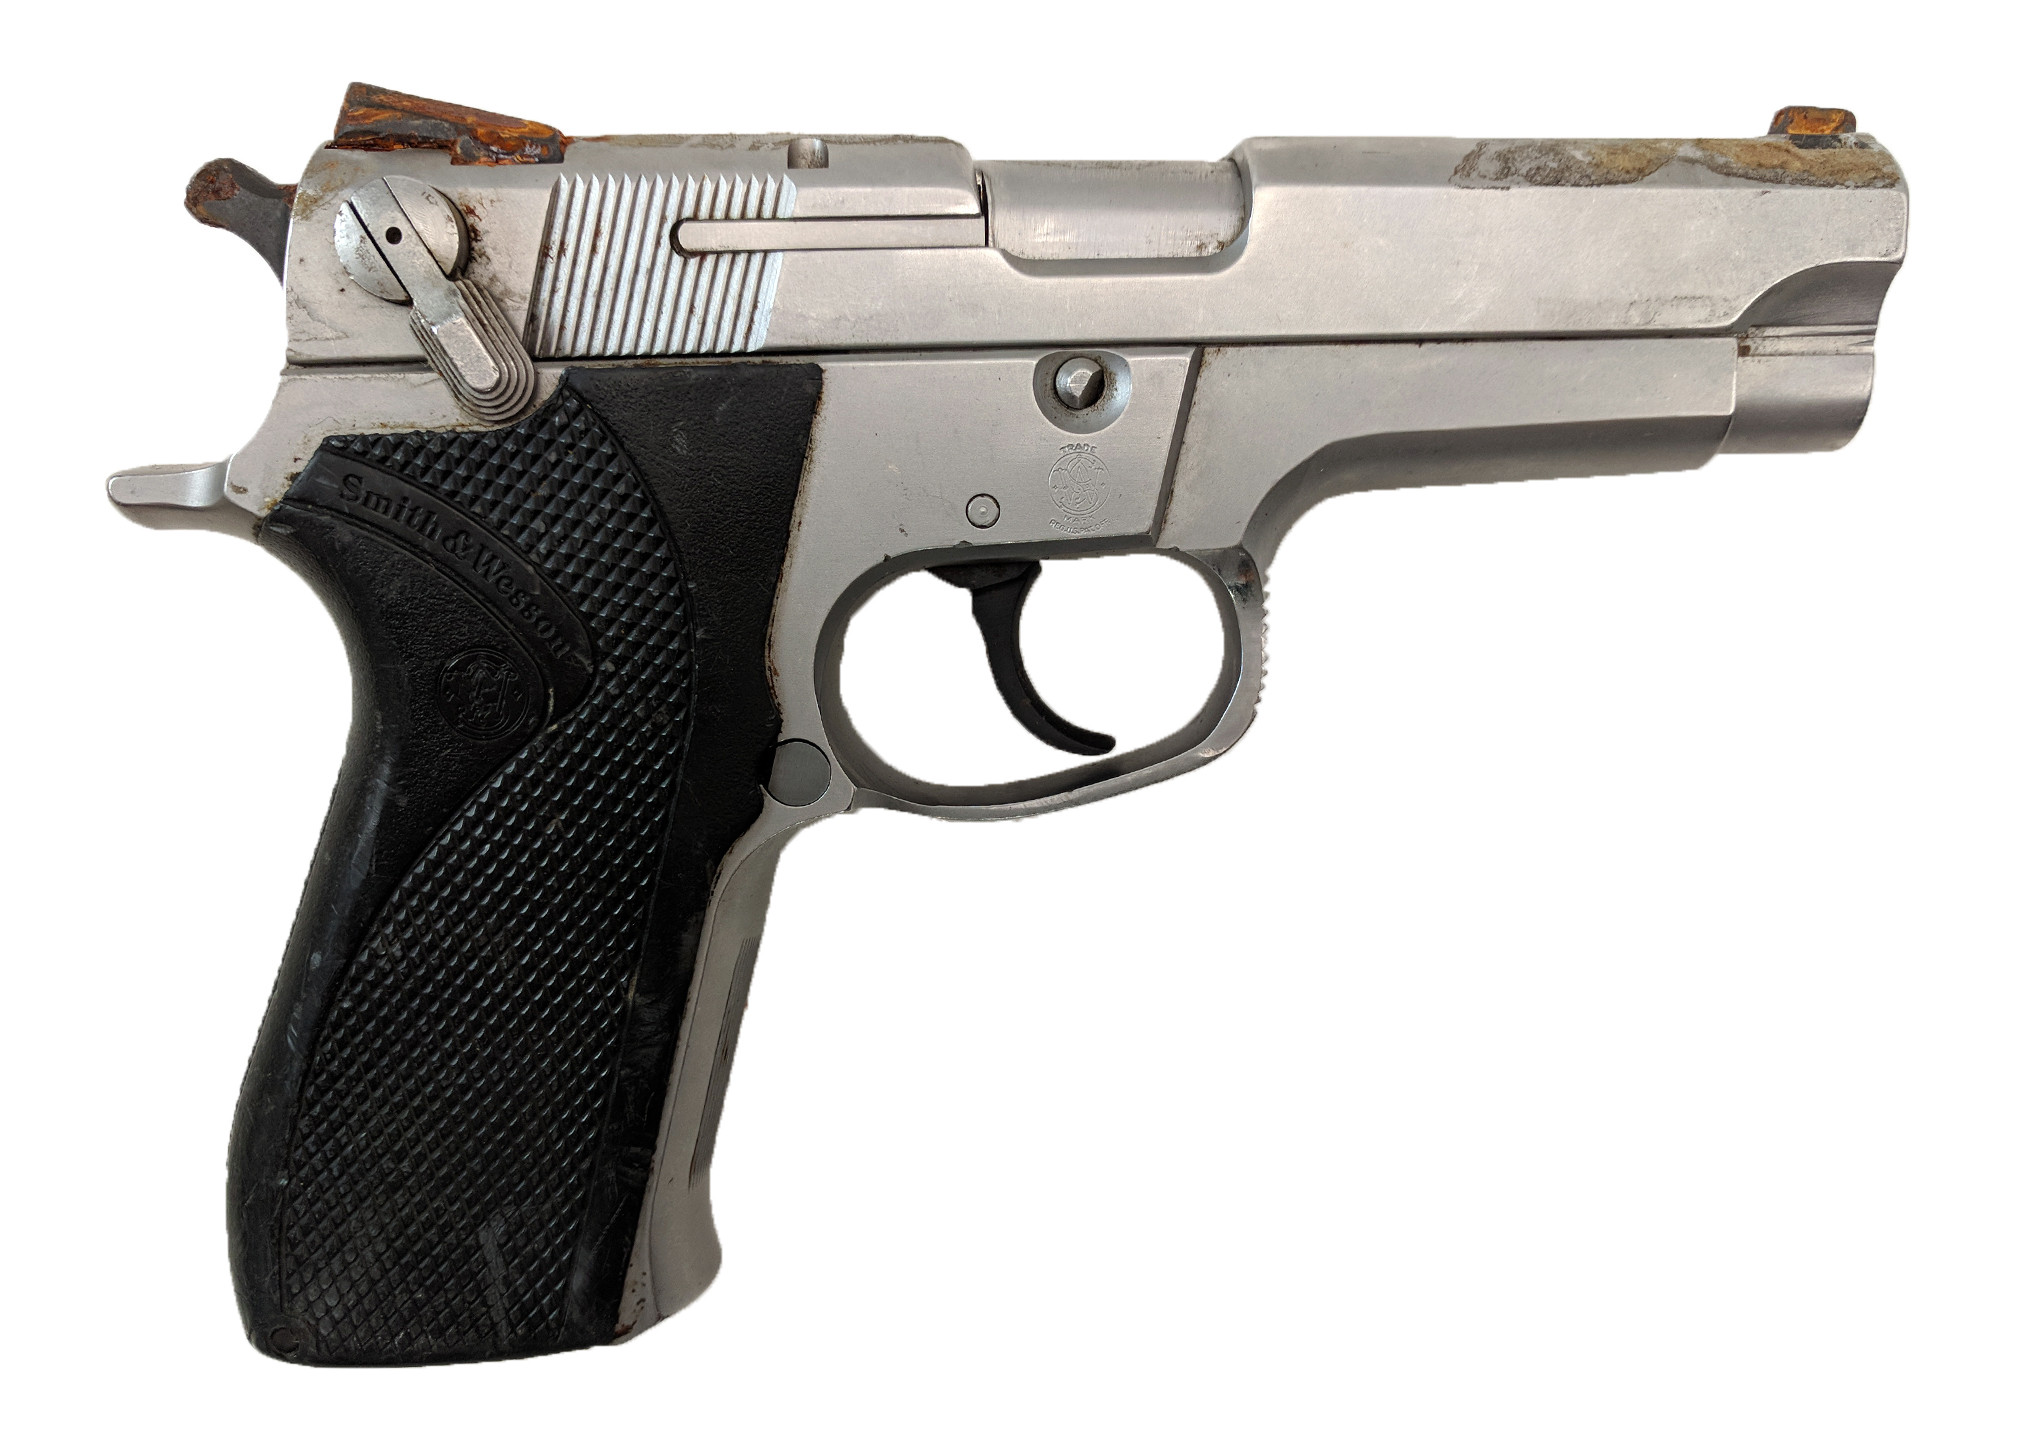 Smith & Wesson 5906, 9mm, No Magazine, *Good, Incomplete*